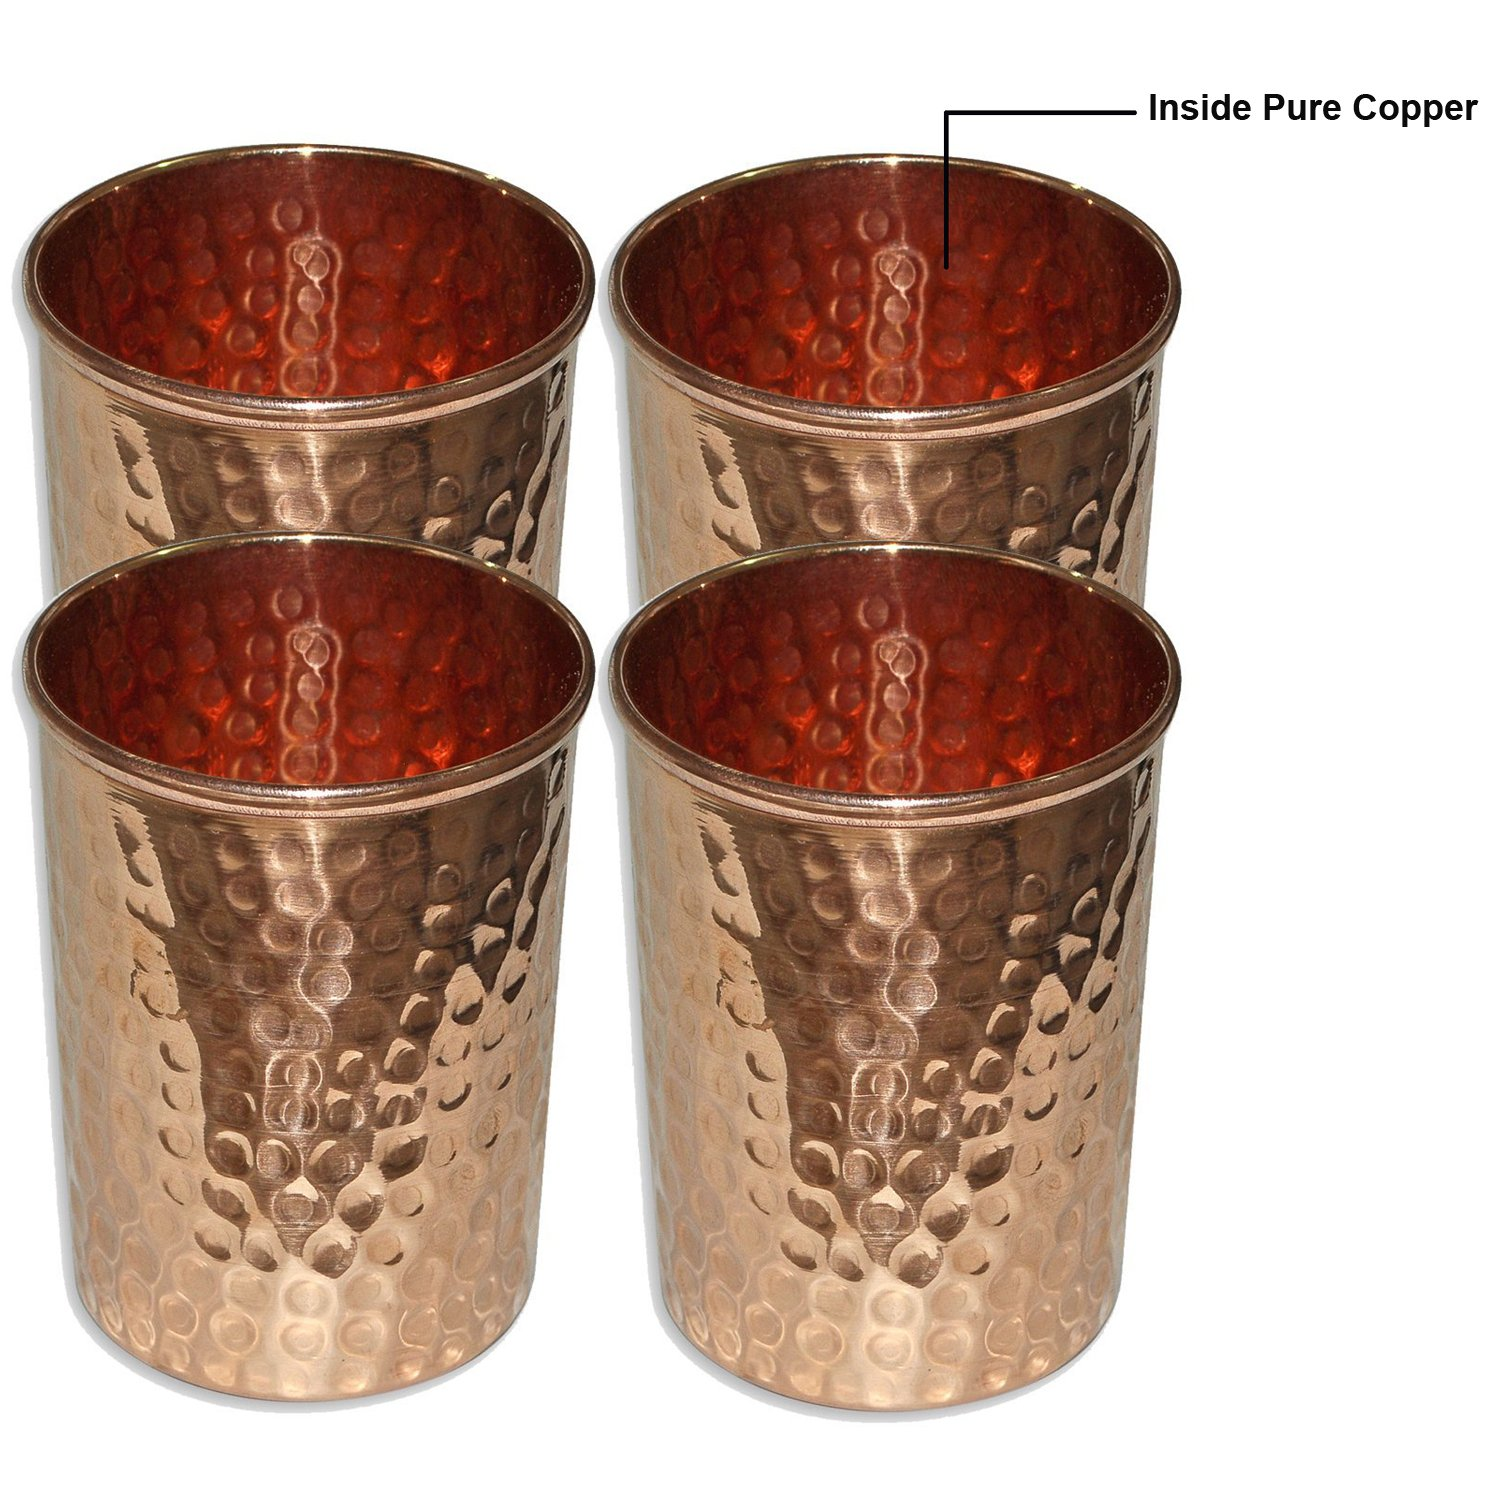 Coqueta Hammered Copper Cups, Set of Four by NapaStyle